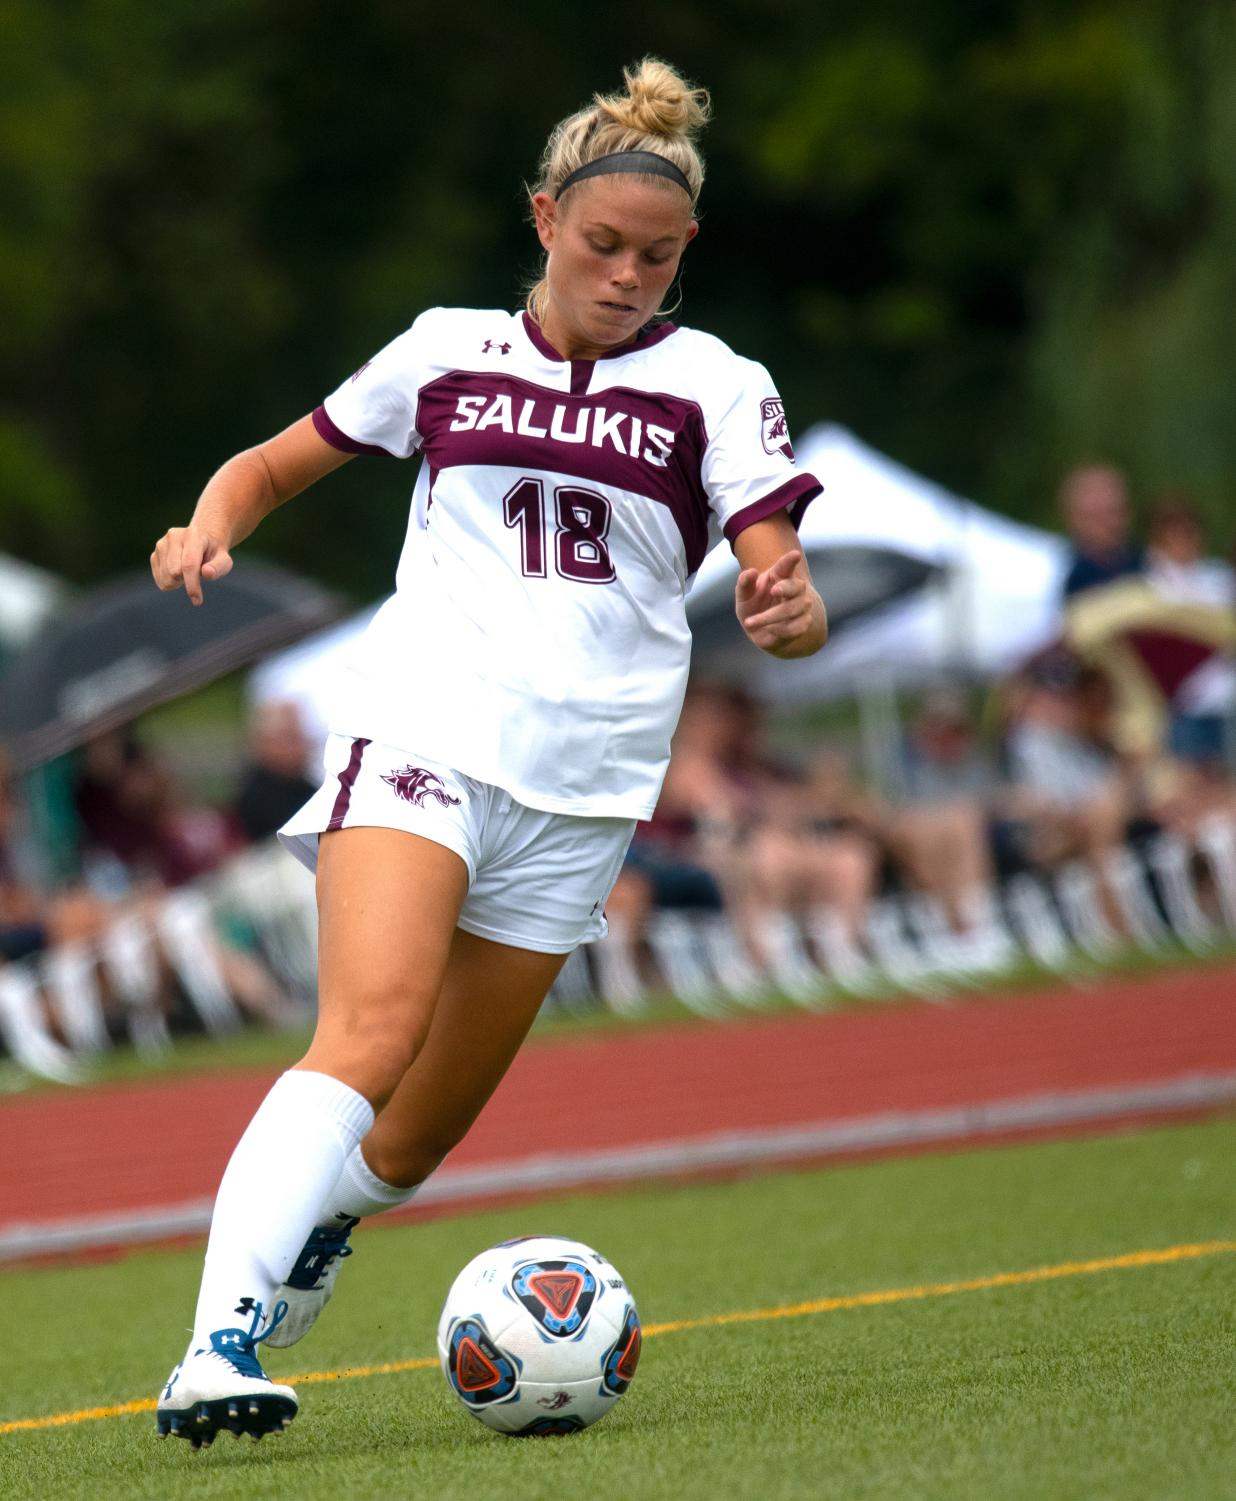 Blake+Clark%2C+of+Marion%2C+kicks+the+ball+during+the+SIU+vs.+IUPUI+game+on+Sunday%2C+Sept.+1%2C+2019%2C+in+Carbondale.+